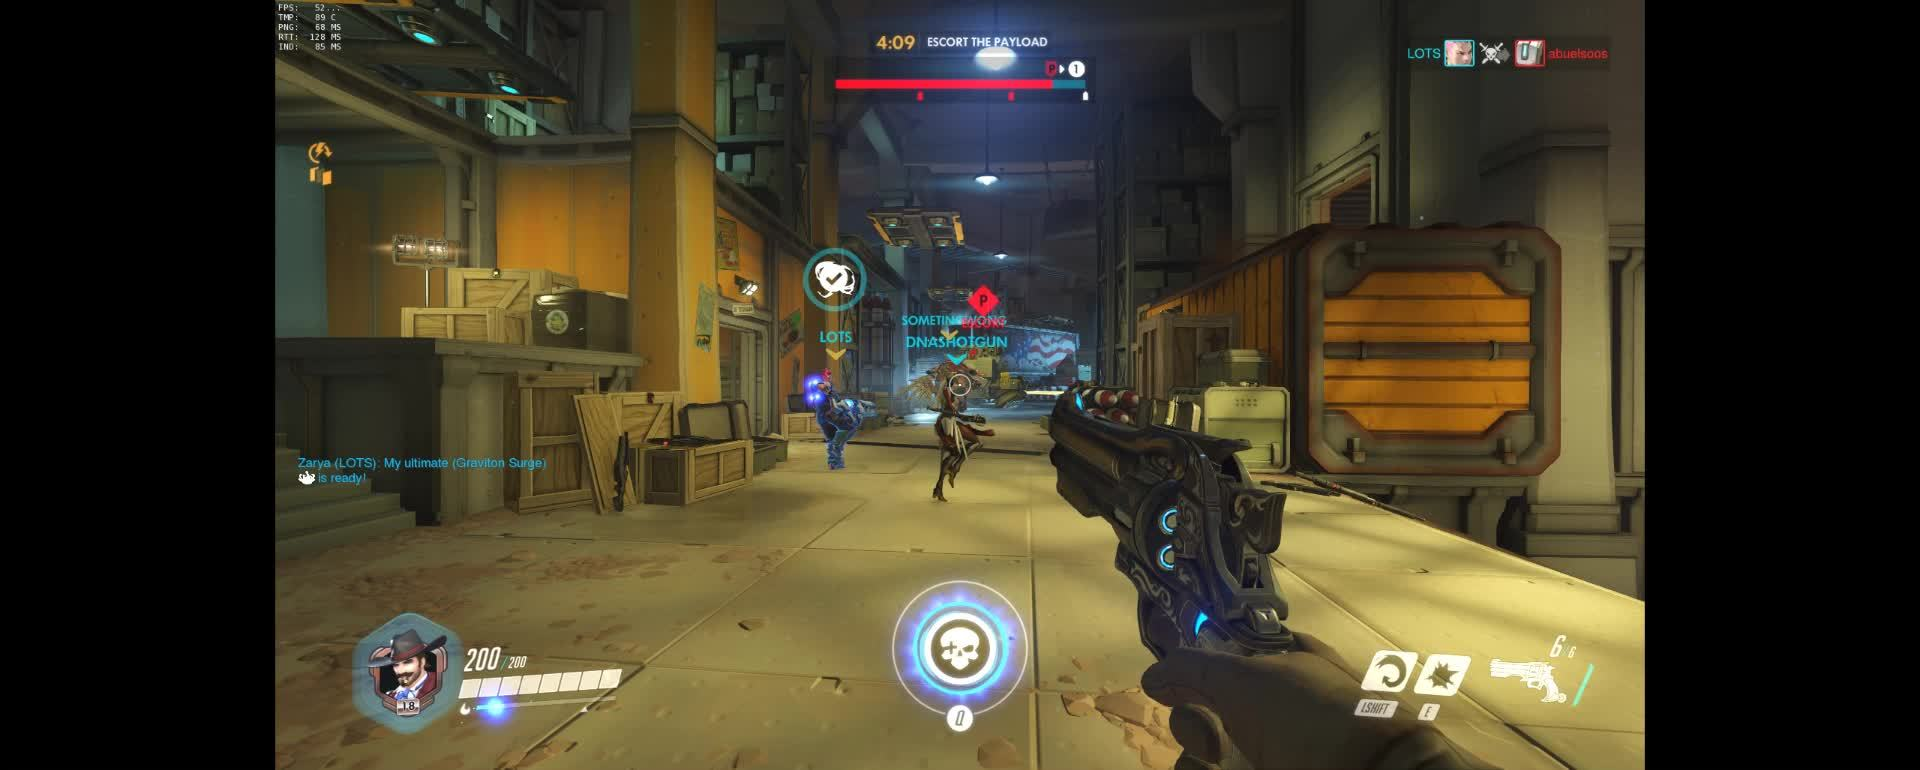 overwatch, satisfying GIFs